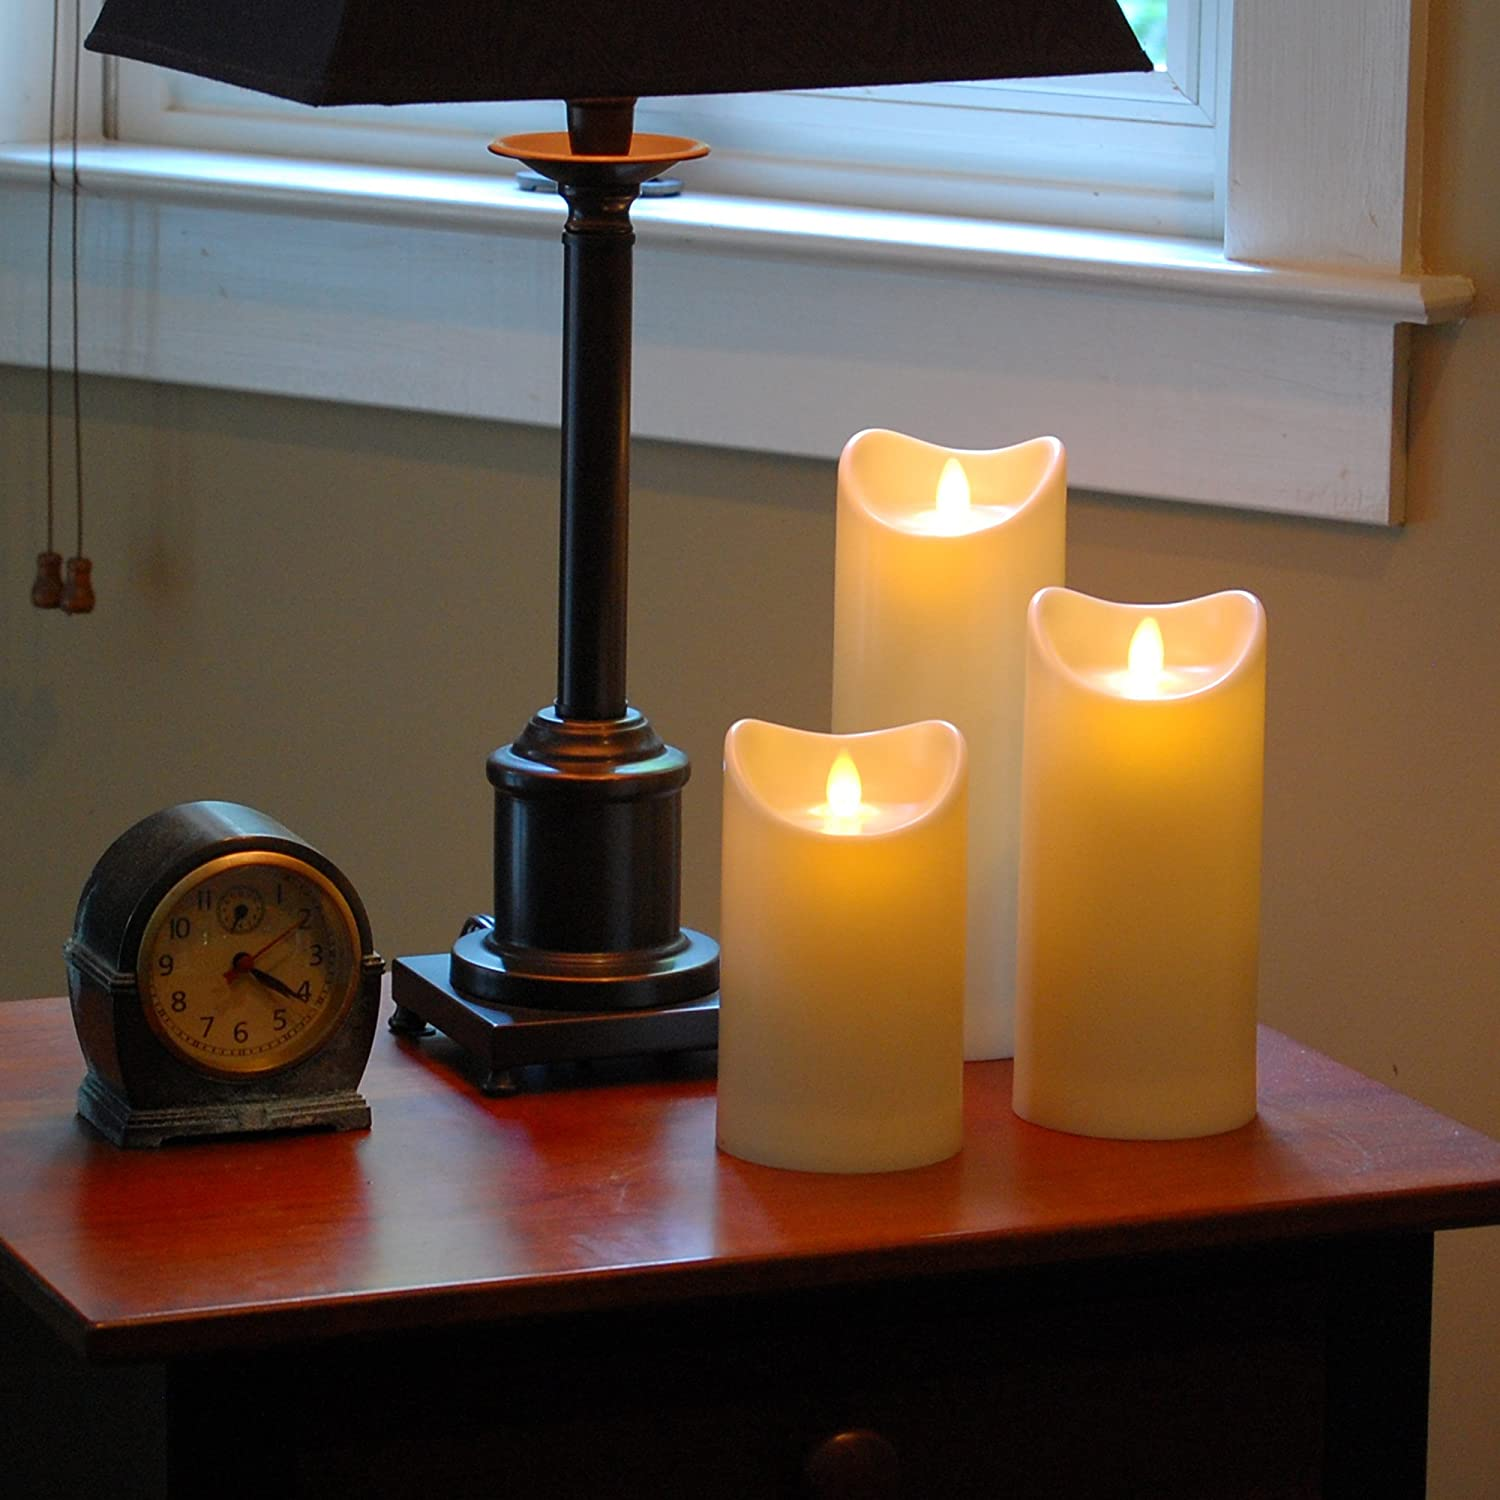 Lumabase 93101 Action Flame Battery Operated Pillar Candle 3.5 x 5 Cream 3.5 x 5